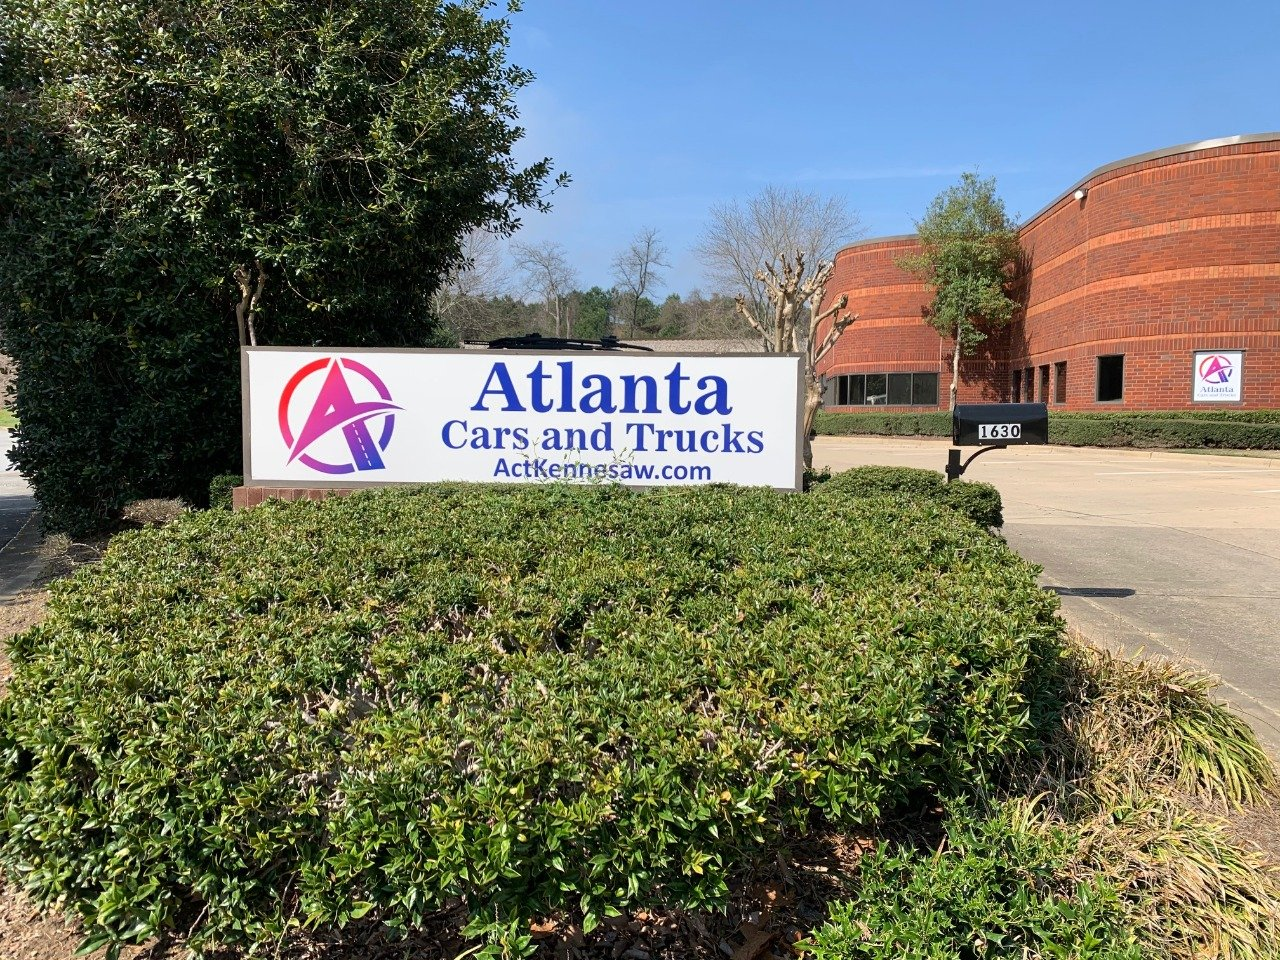 Atlanta Cars and Trucks